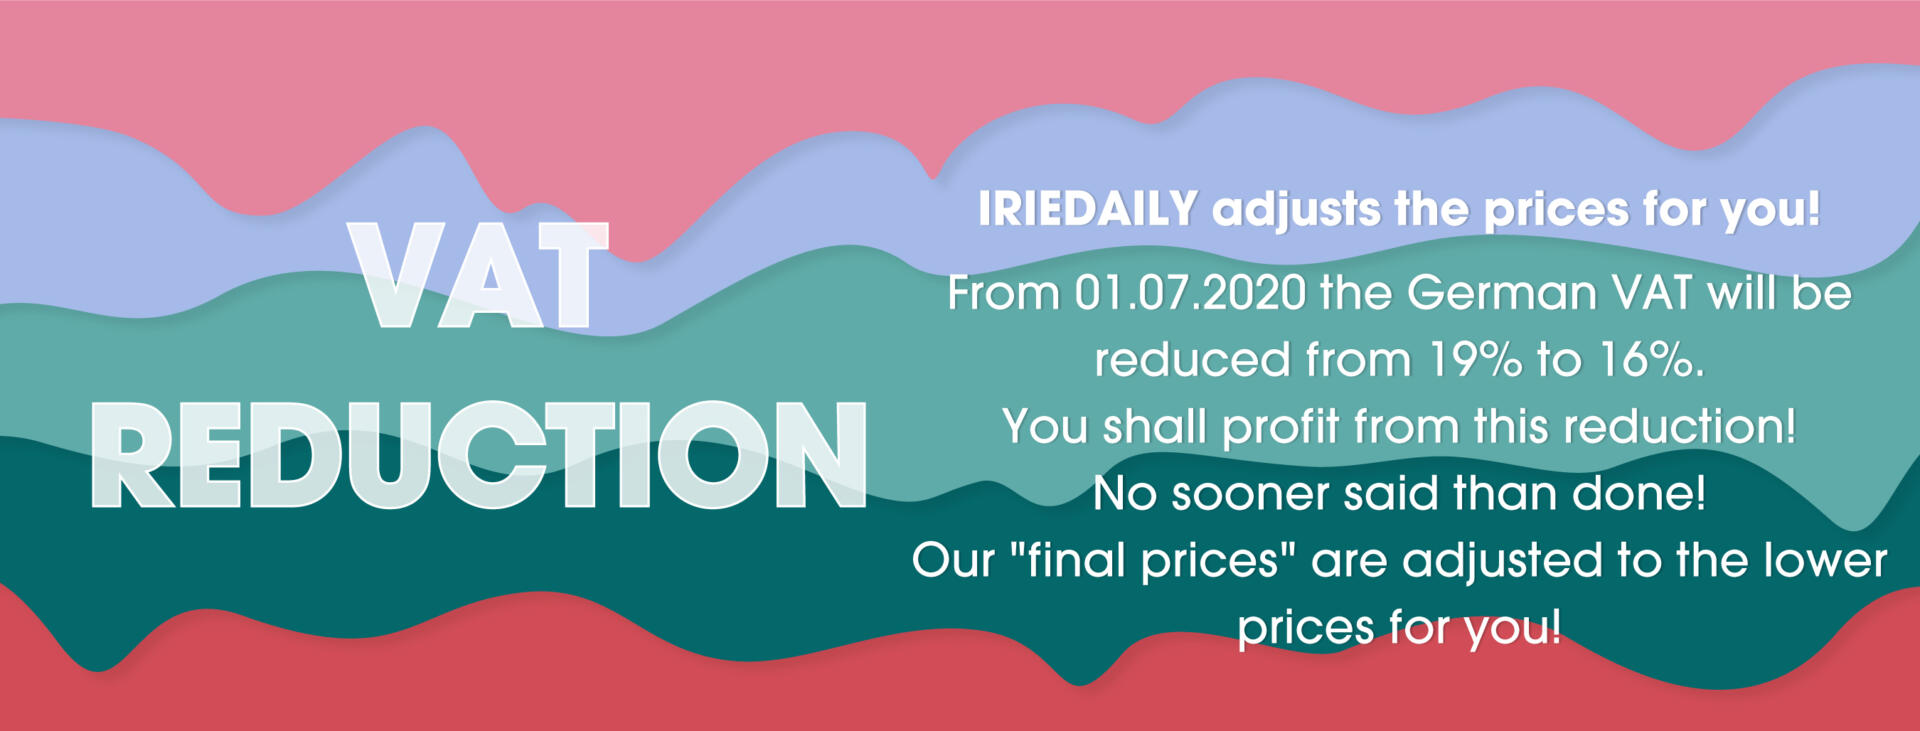 IRIEDAILY VAT reduction